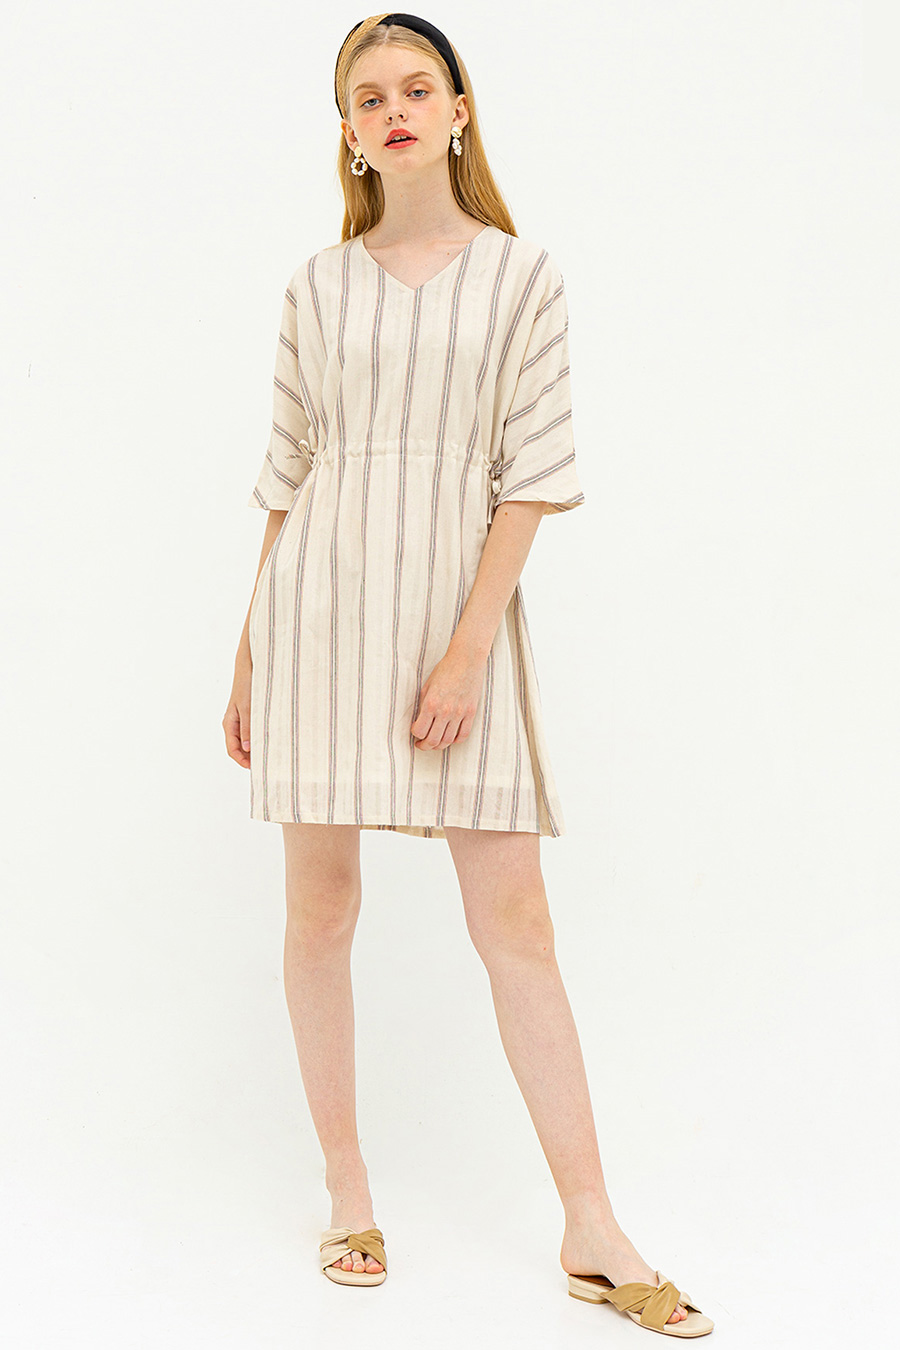 IZZEY DRESS - DESERT SAND STRIPE [BY MODPARADE]